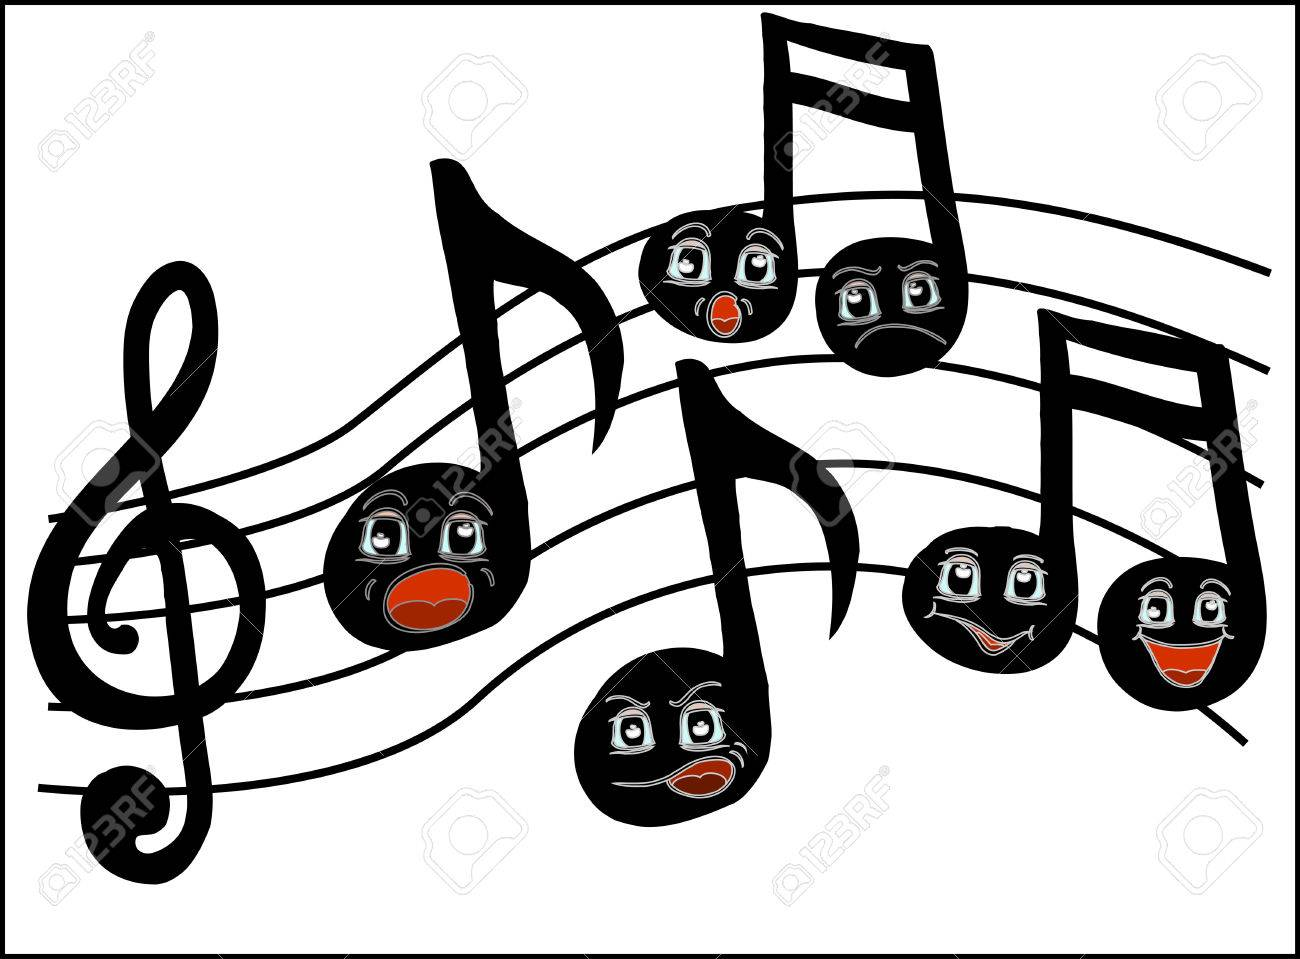 Cartoon Music Notes With Funny Faces Royalty Free Cliparts ...